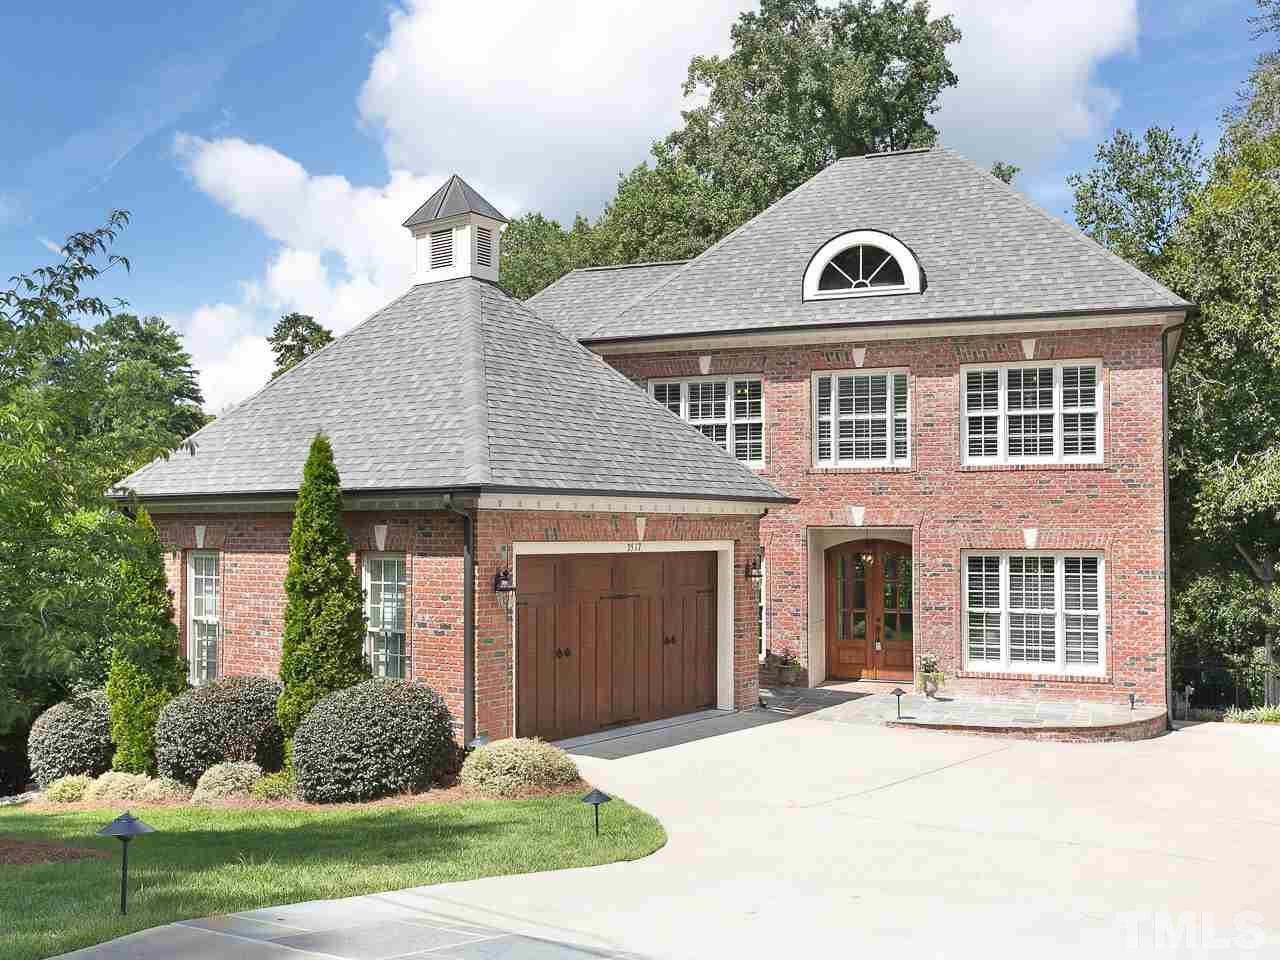 Brick exterior looking as classic and timeless as ever